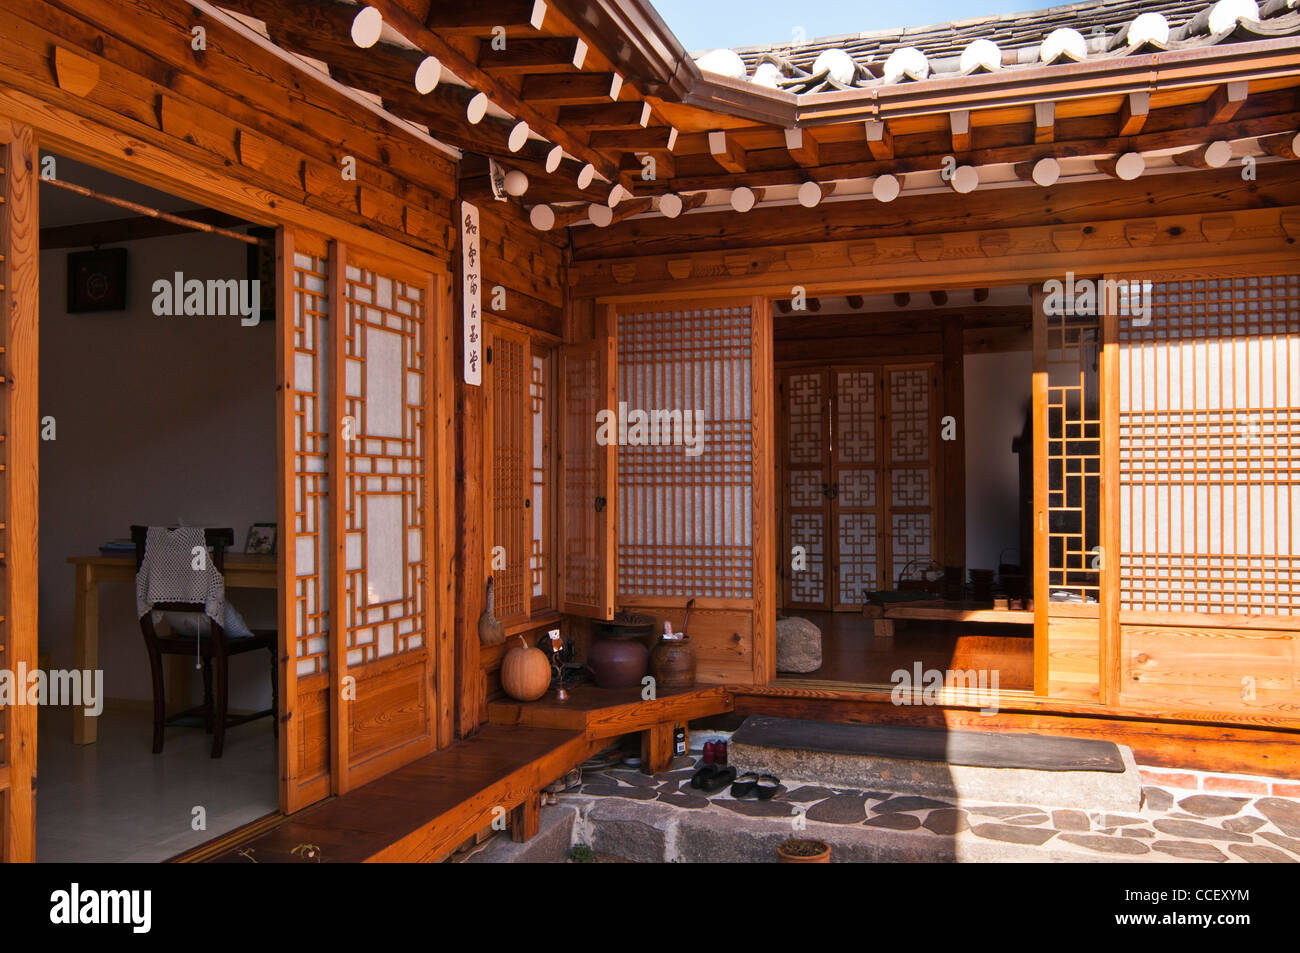 Traditional Korean House with timber frames and clay roof tiles in Bukchon Hanok Village, Seoul, Korea Stock Photo